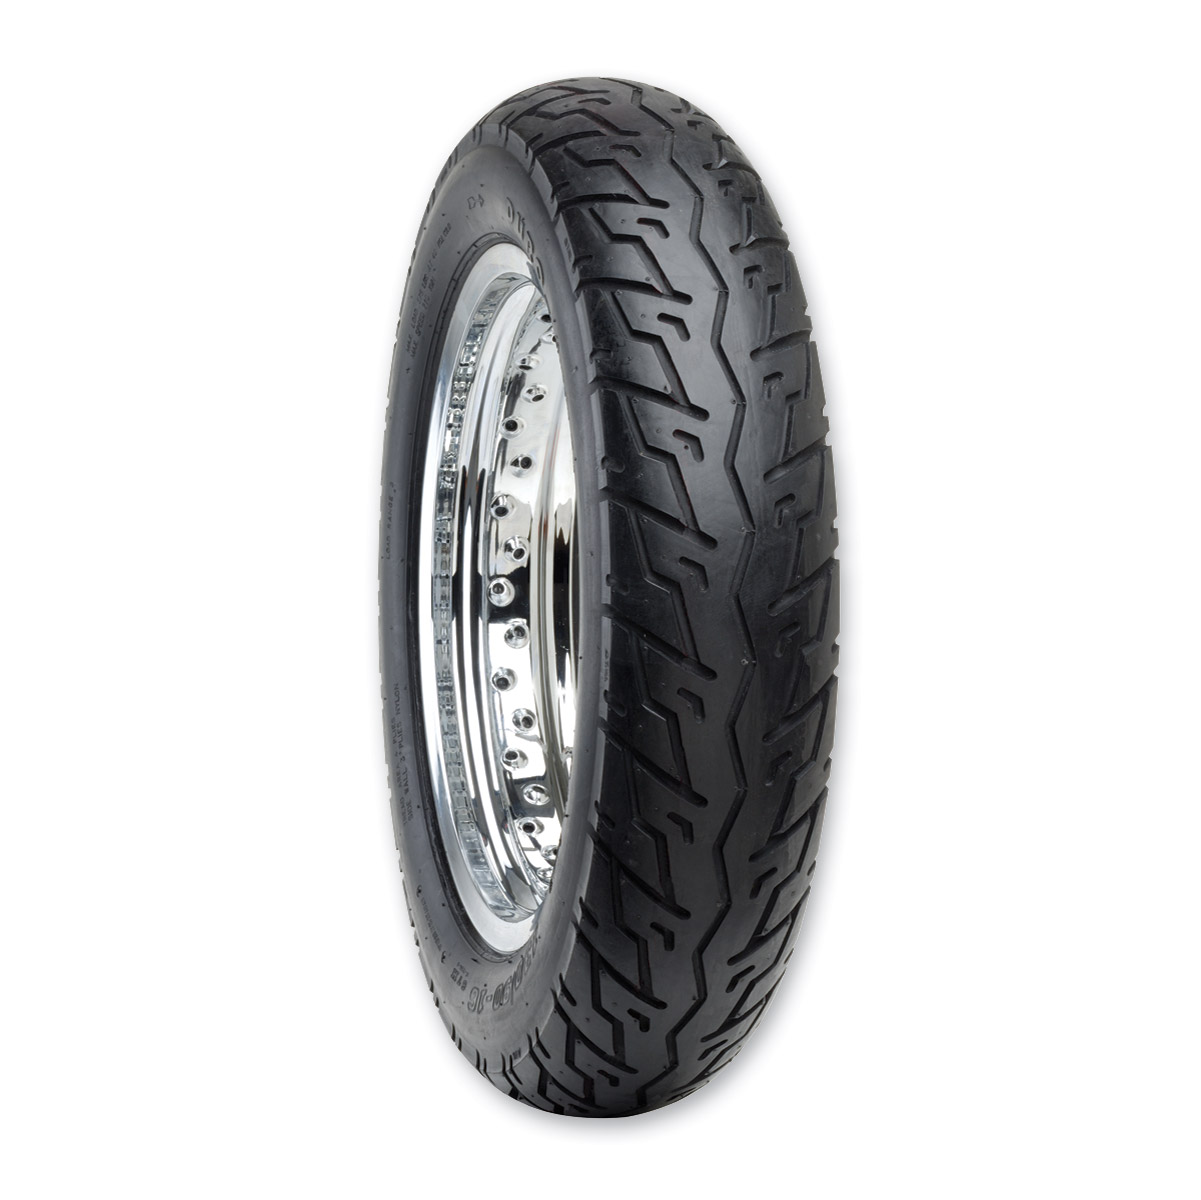 Duro HF261A Excursion 120/90-17 Front/Rear Tire